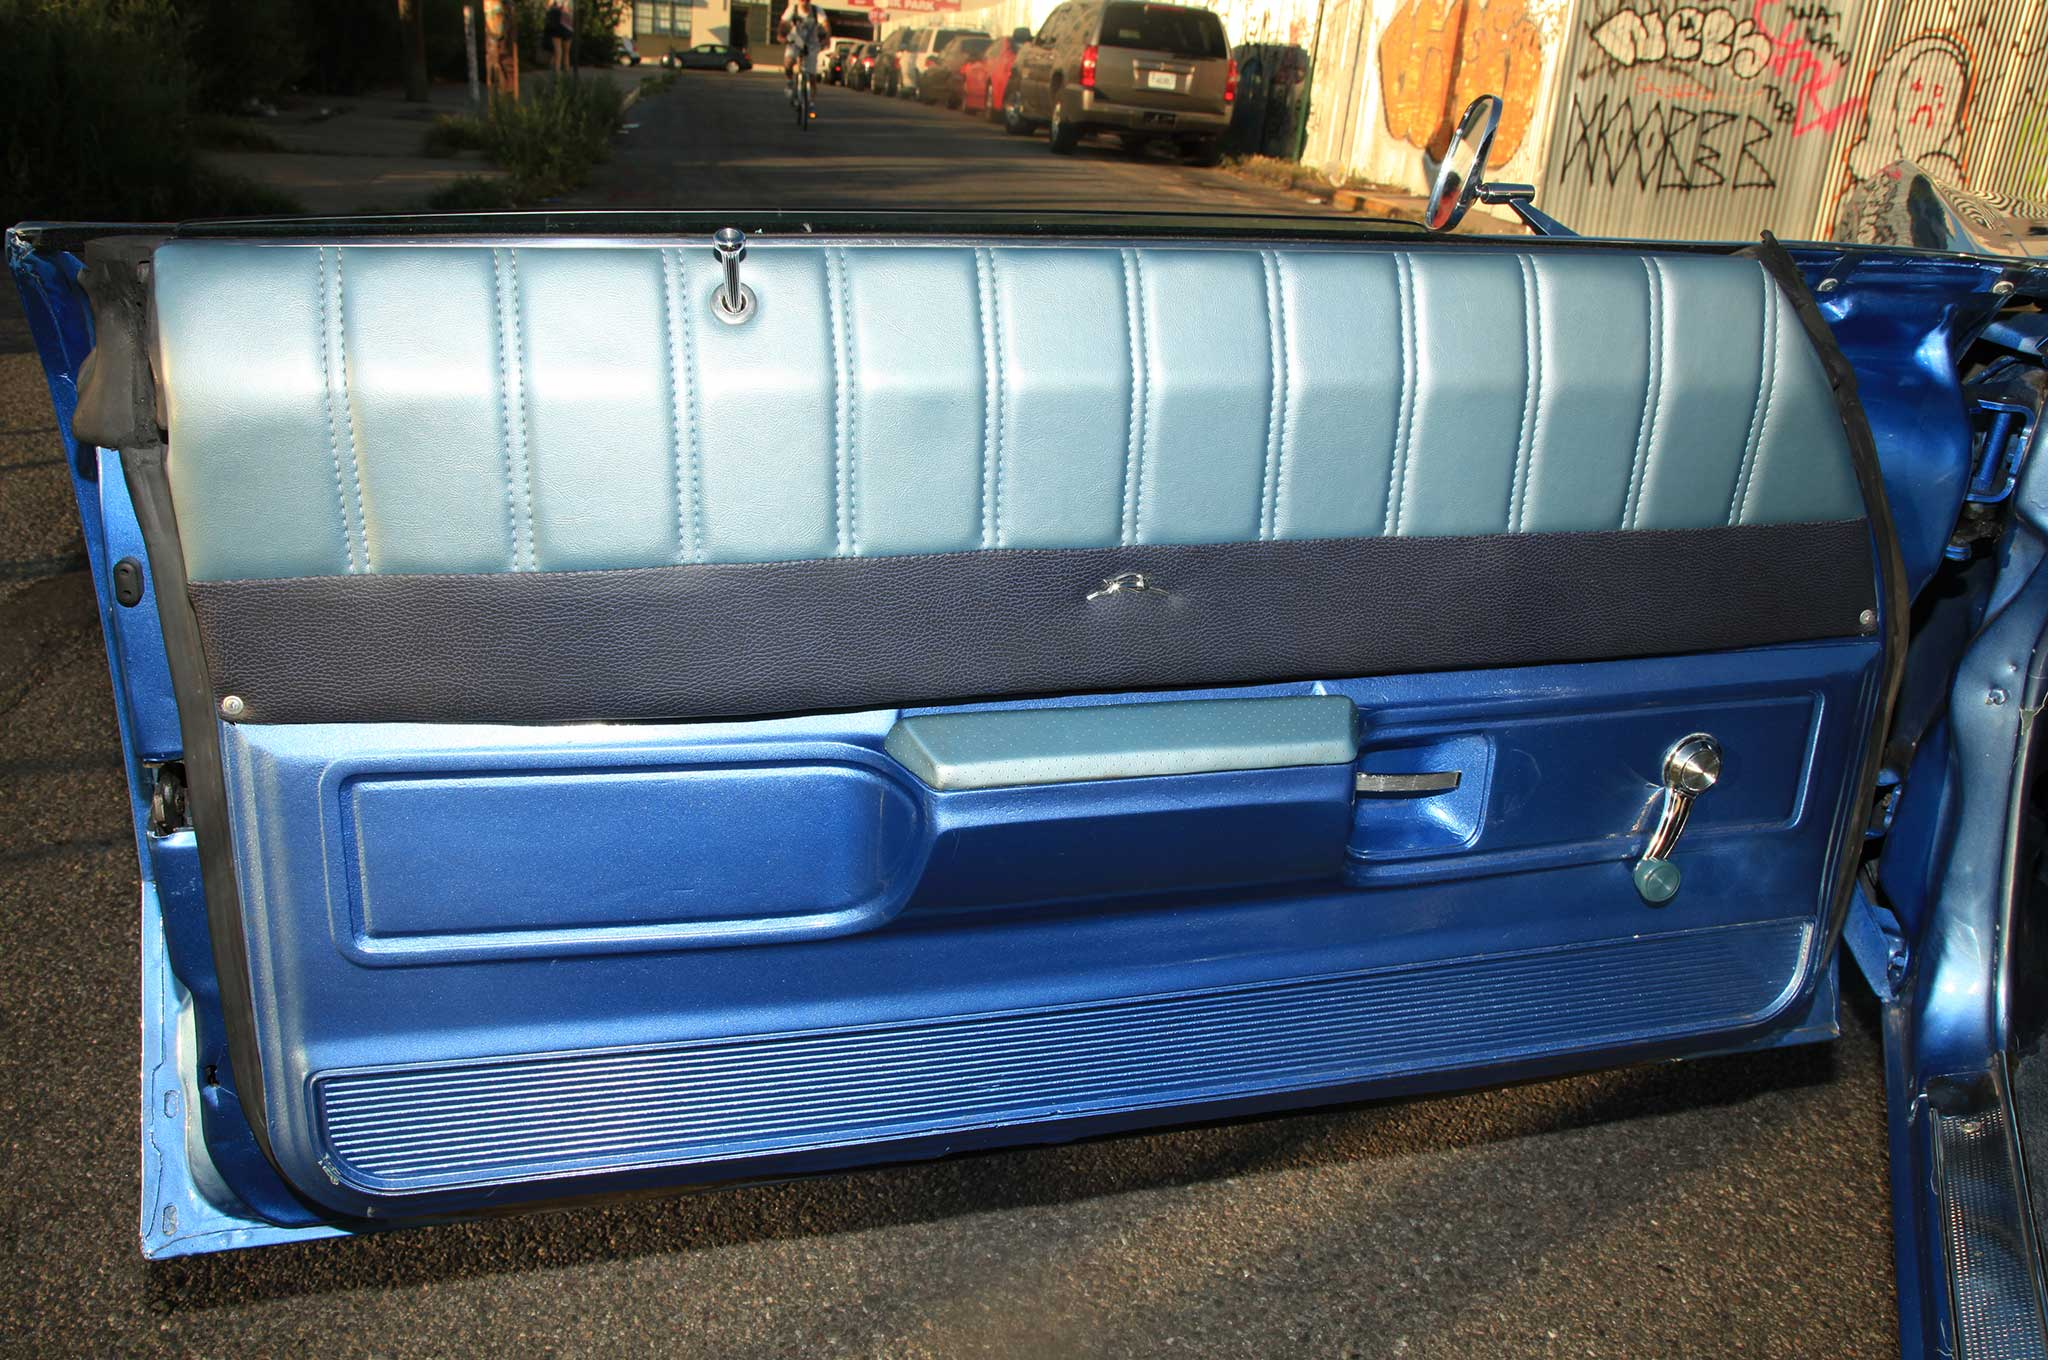 about this editor & 1972 chevrolet impala door panel - Lowrider